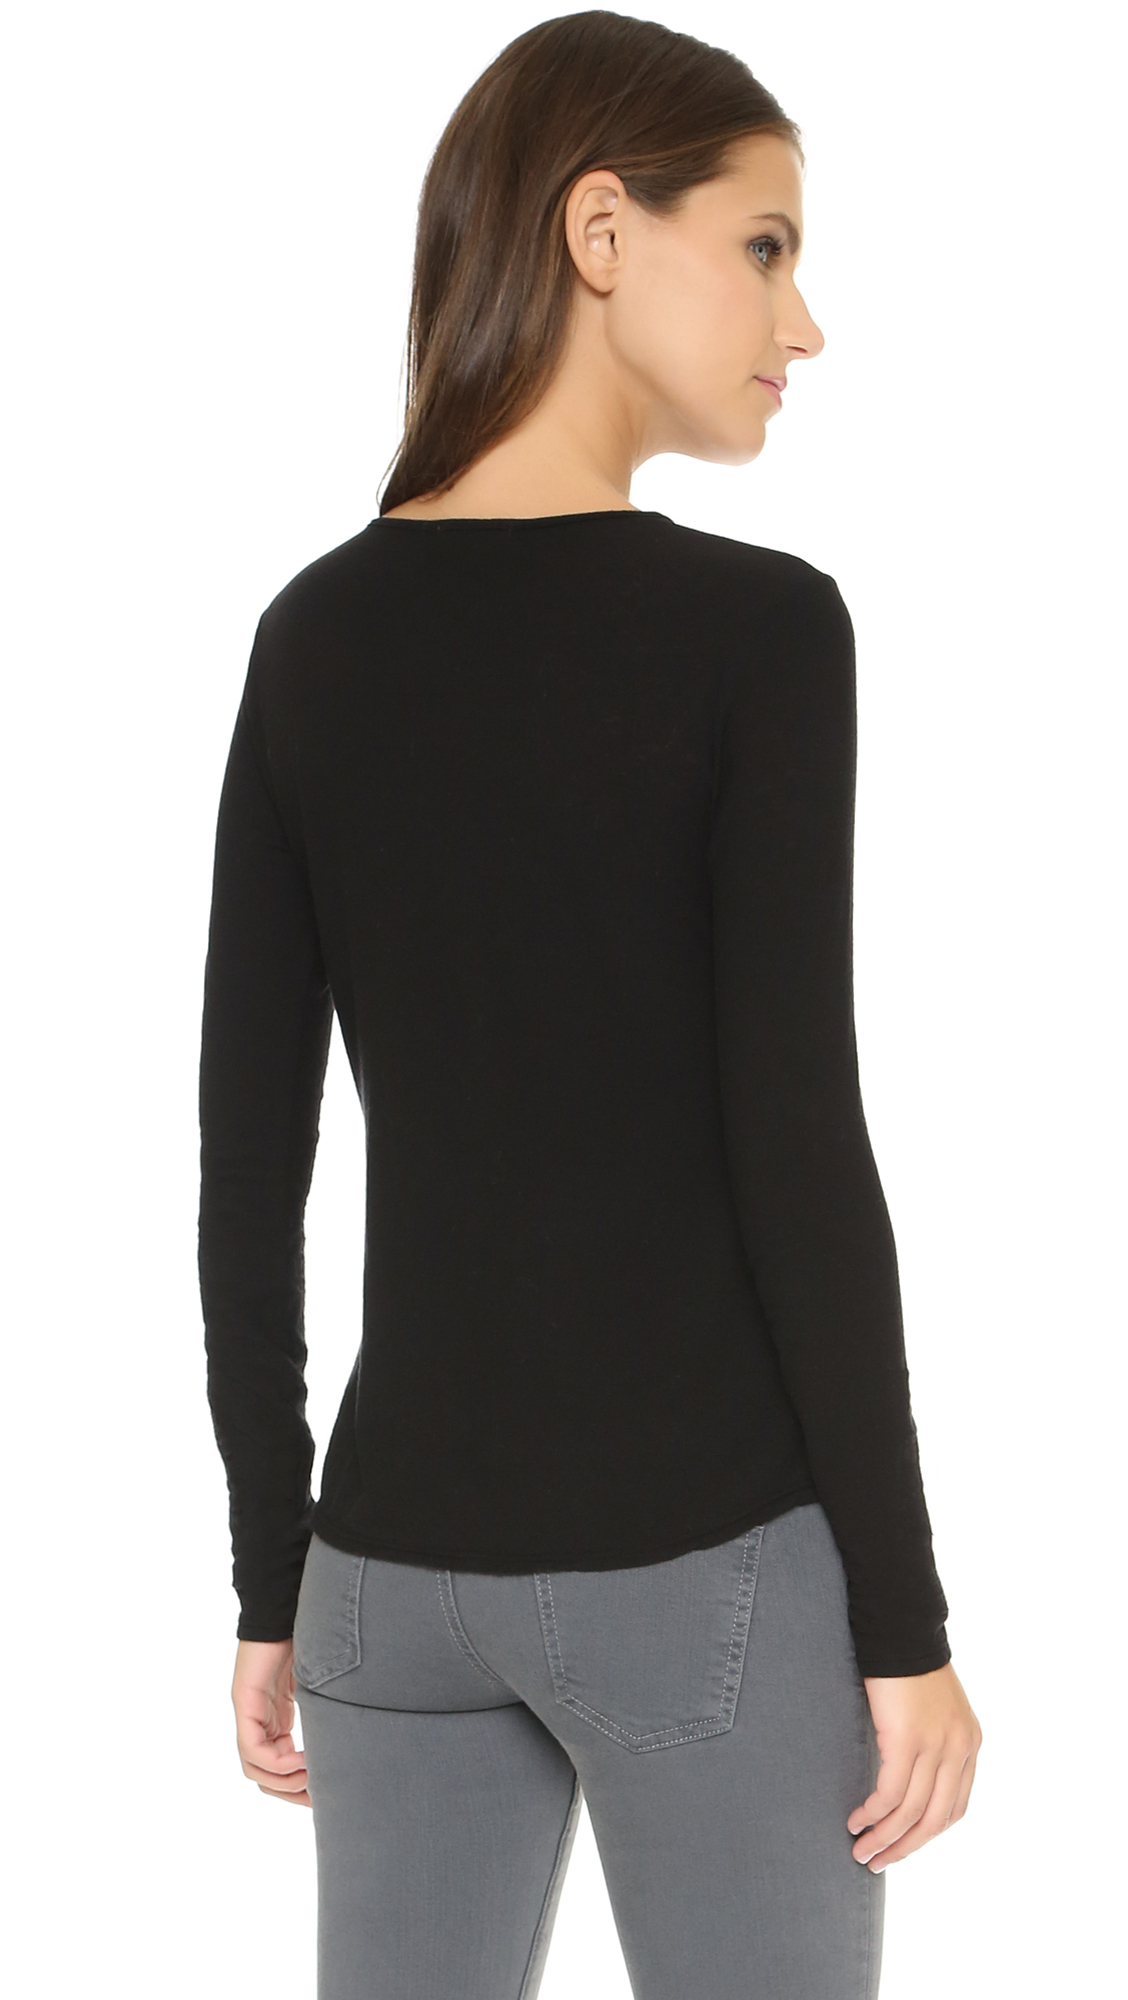 James perse superfine henley in black lyst for James perse henley shirt